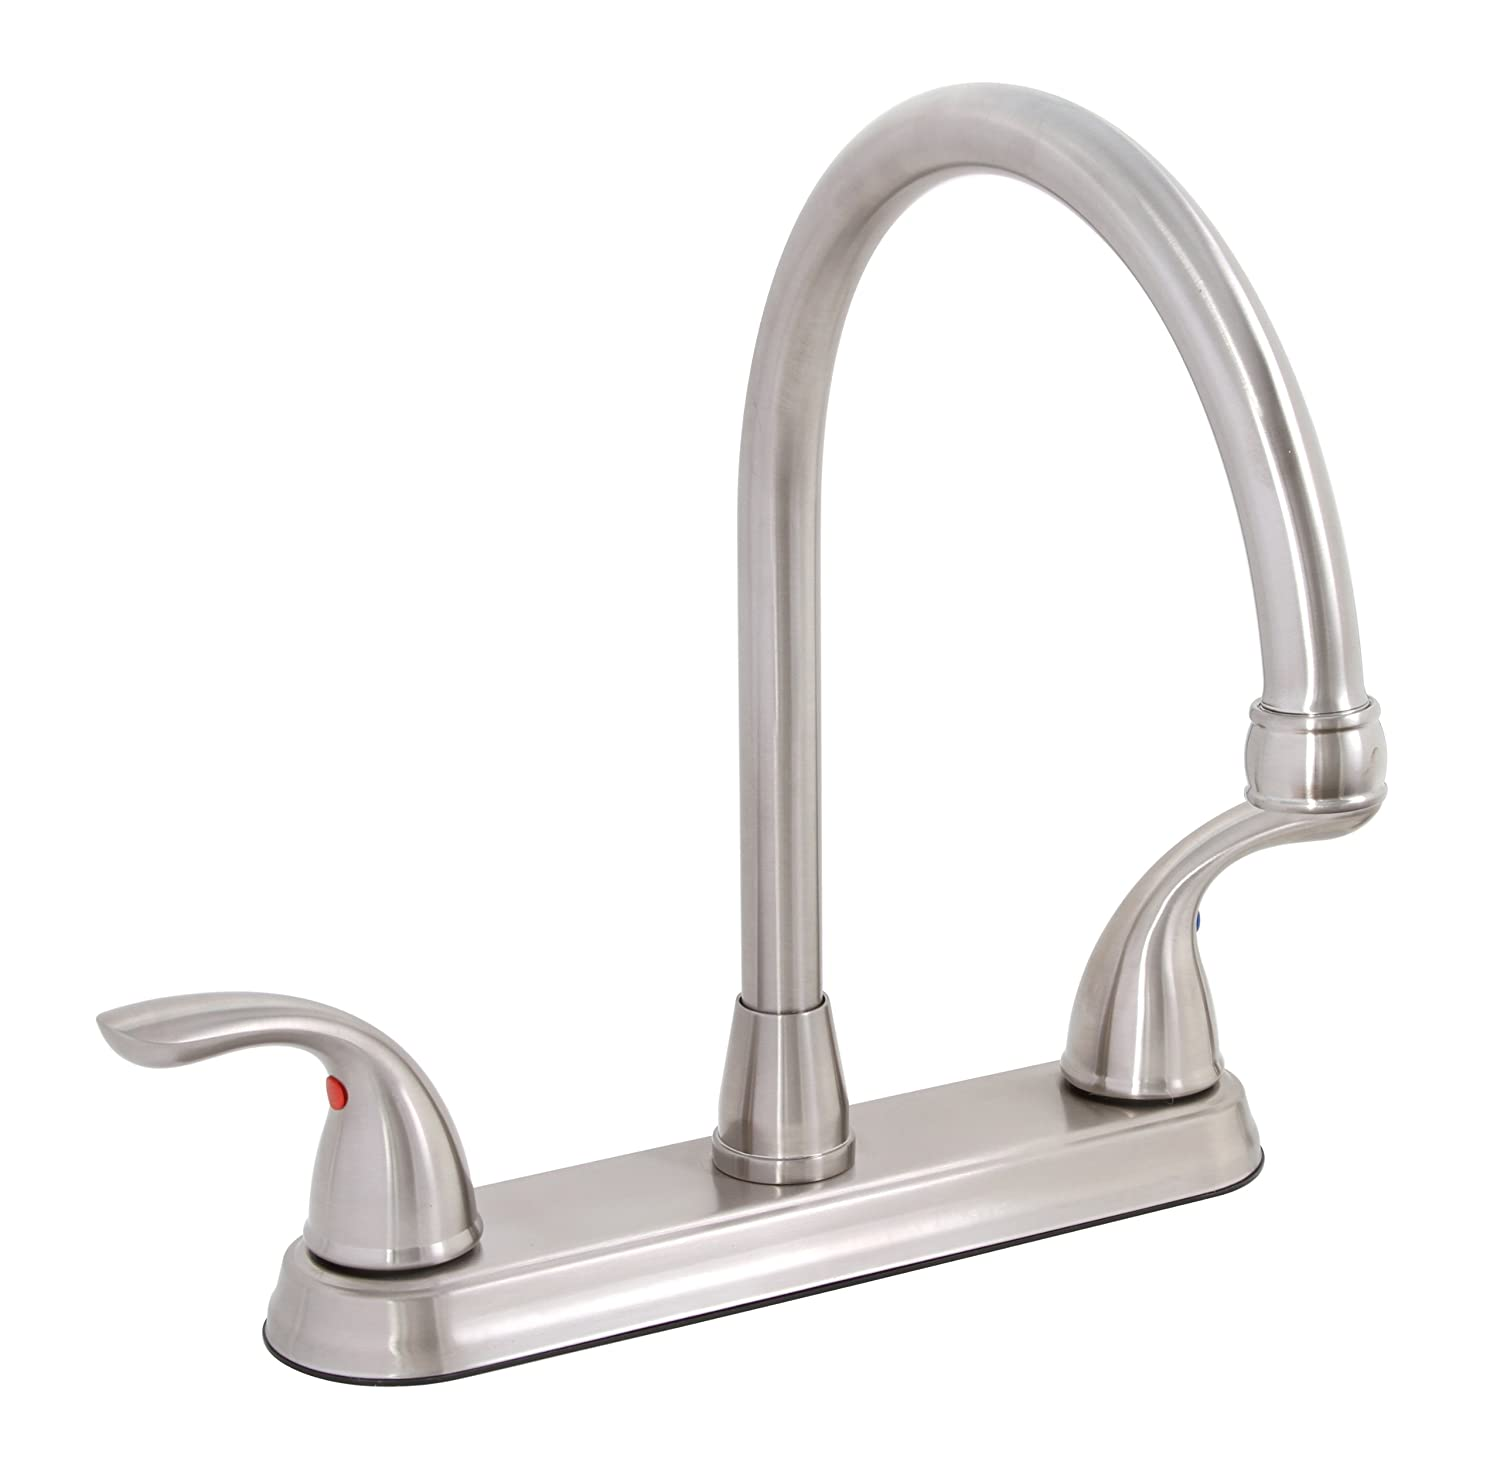 PREMIER GIDDS-120446LF Westlake Kitchen Faucet with Two Handles, Brushed Nickel, Lead Free